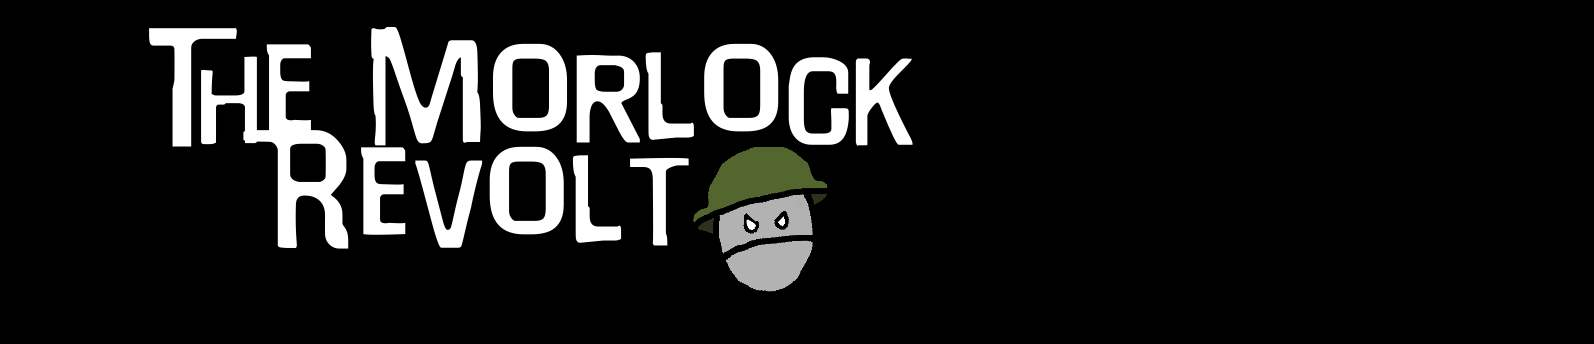 The Morlock Revolt